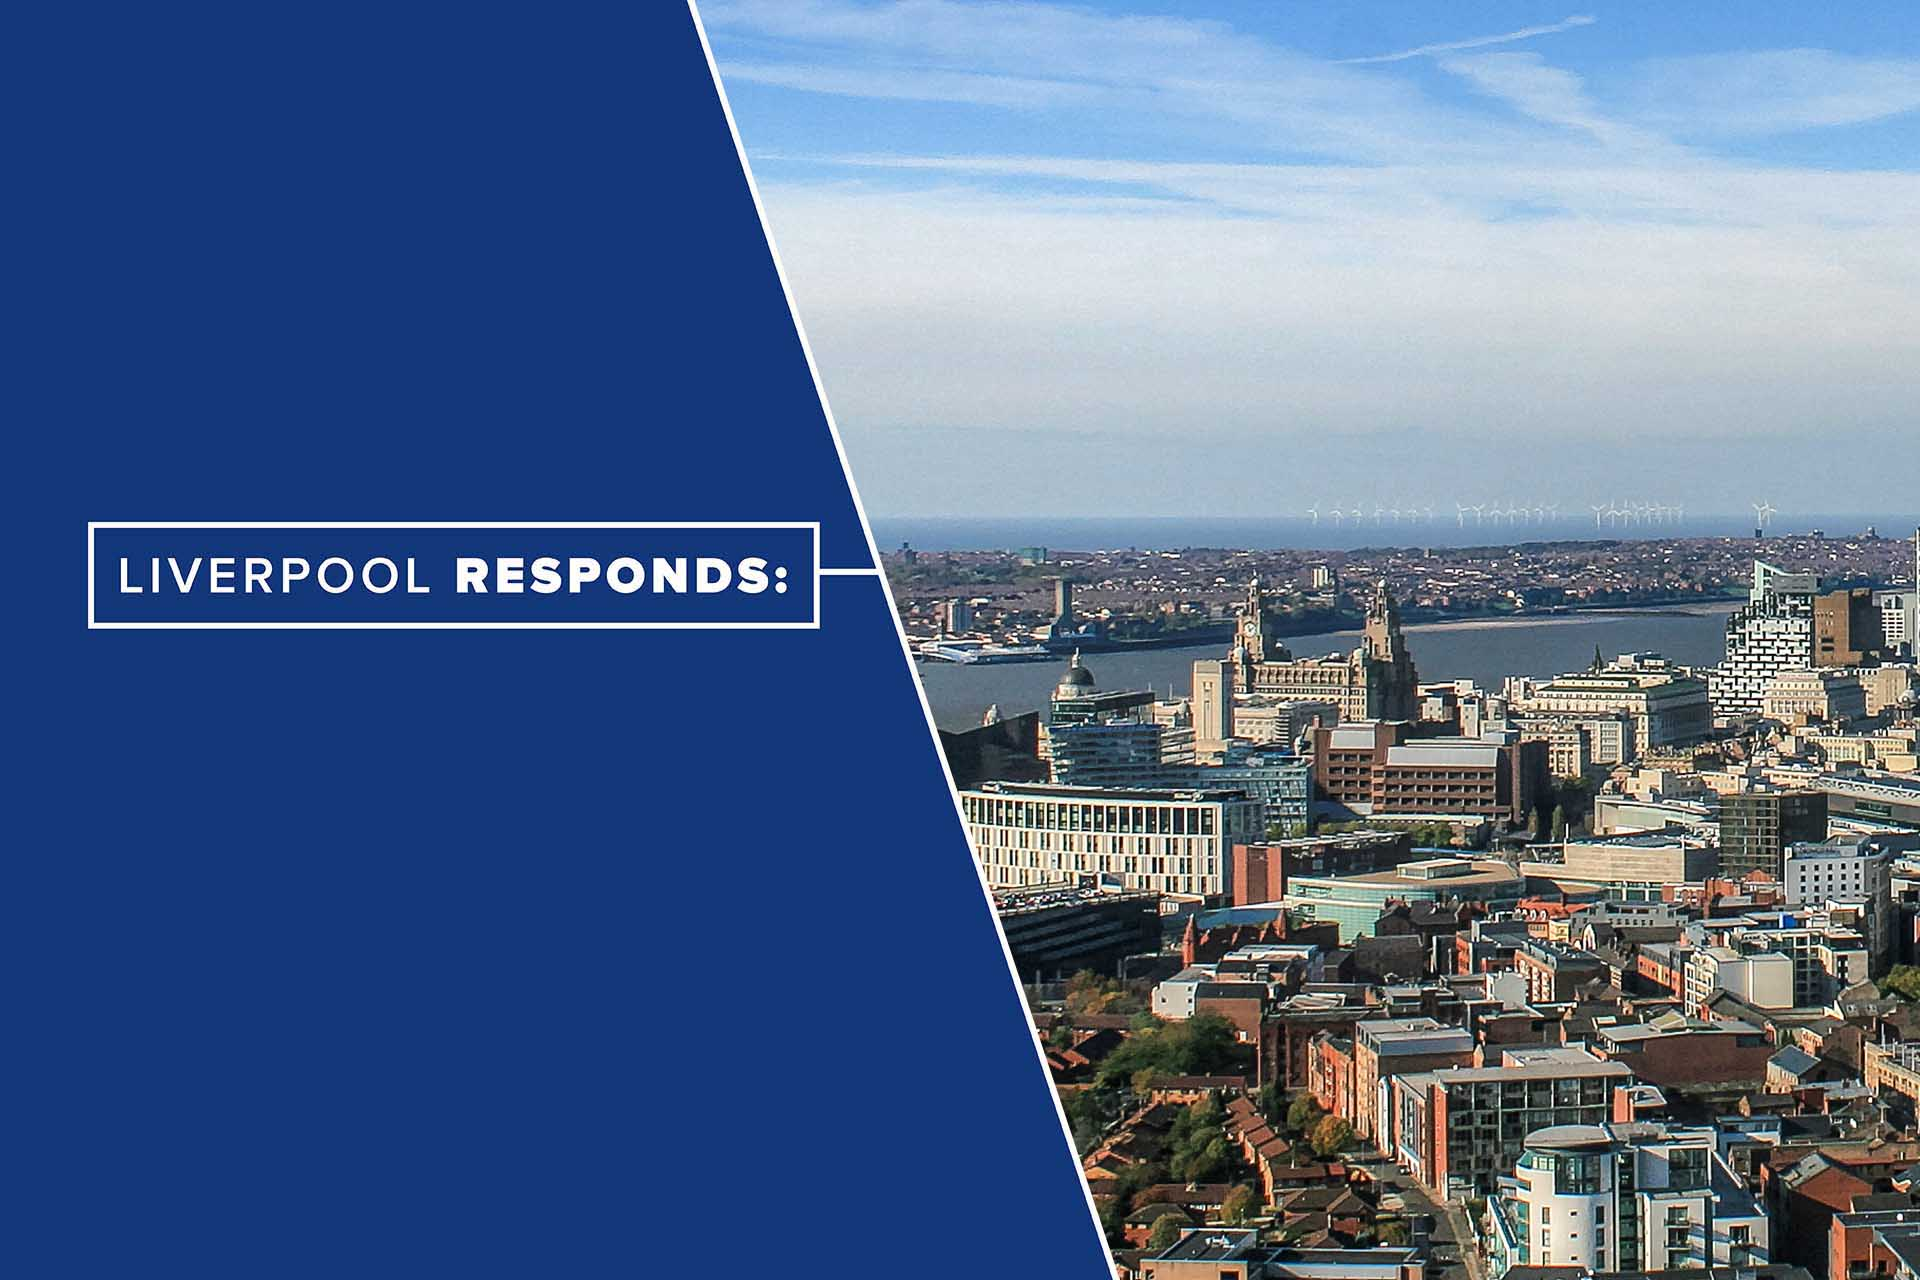 Liverpool Responds: Harnessing science and engineering for civic benefit